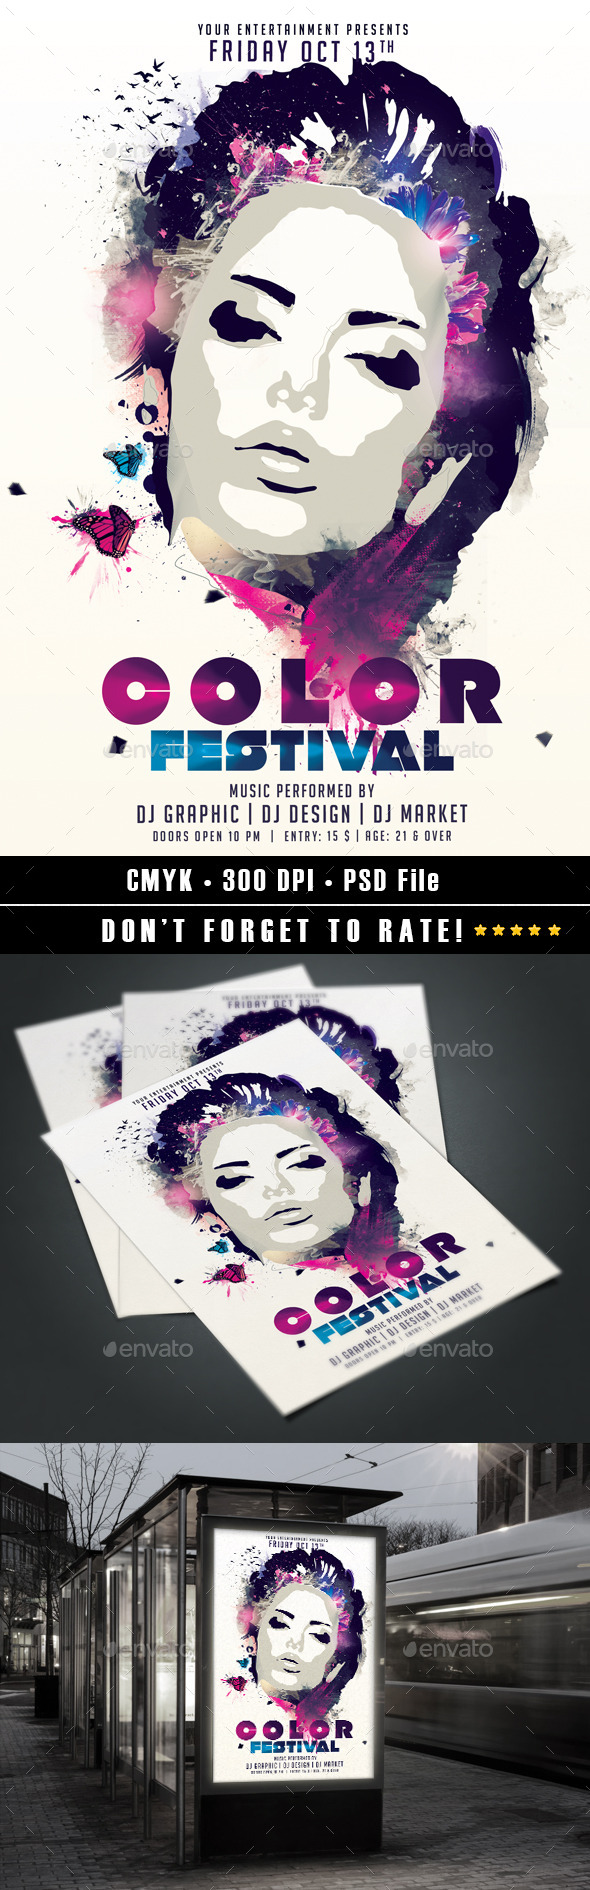 GraphicRiver Color Festival v2 11769636